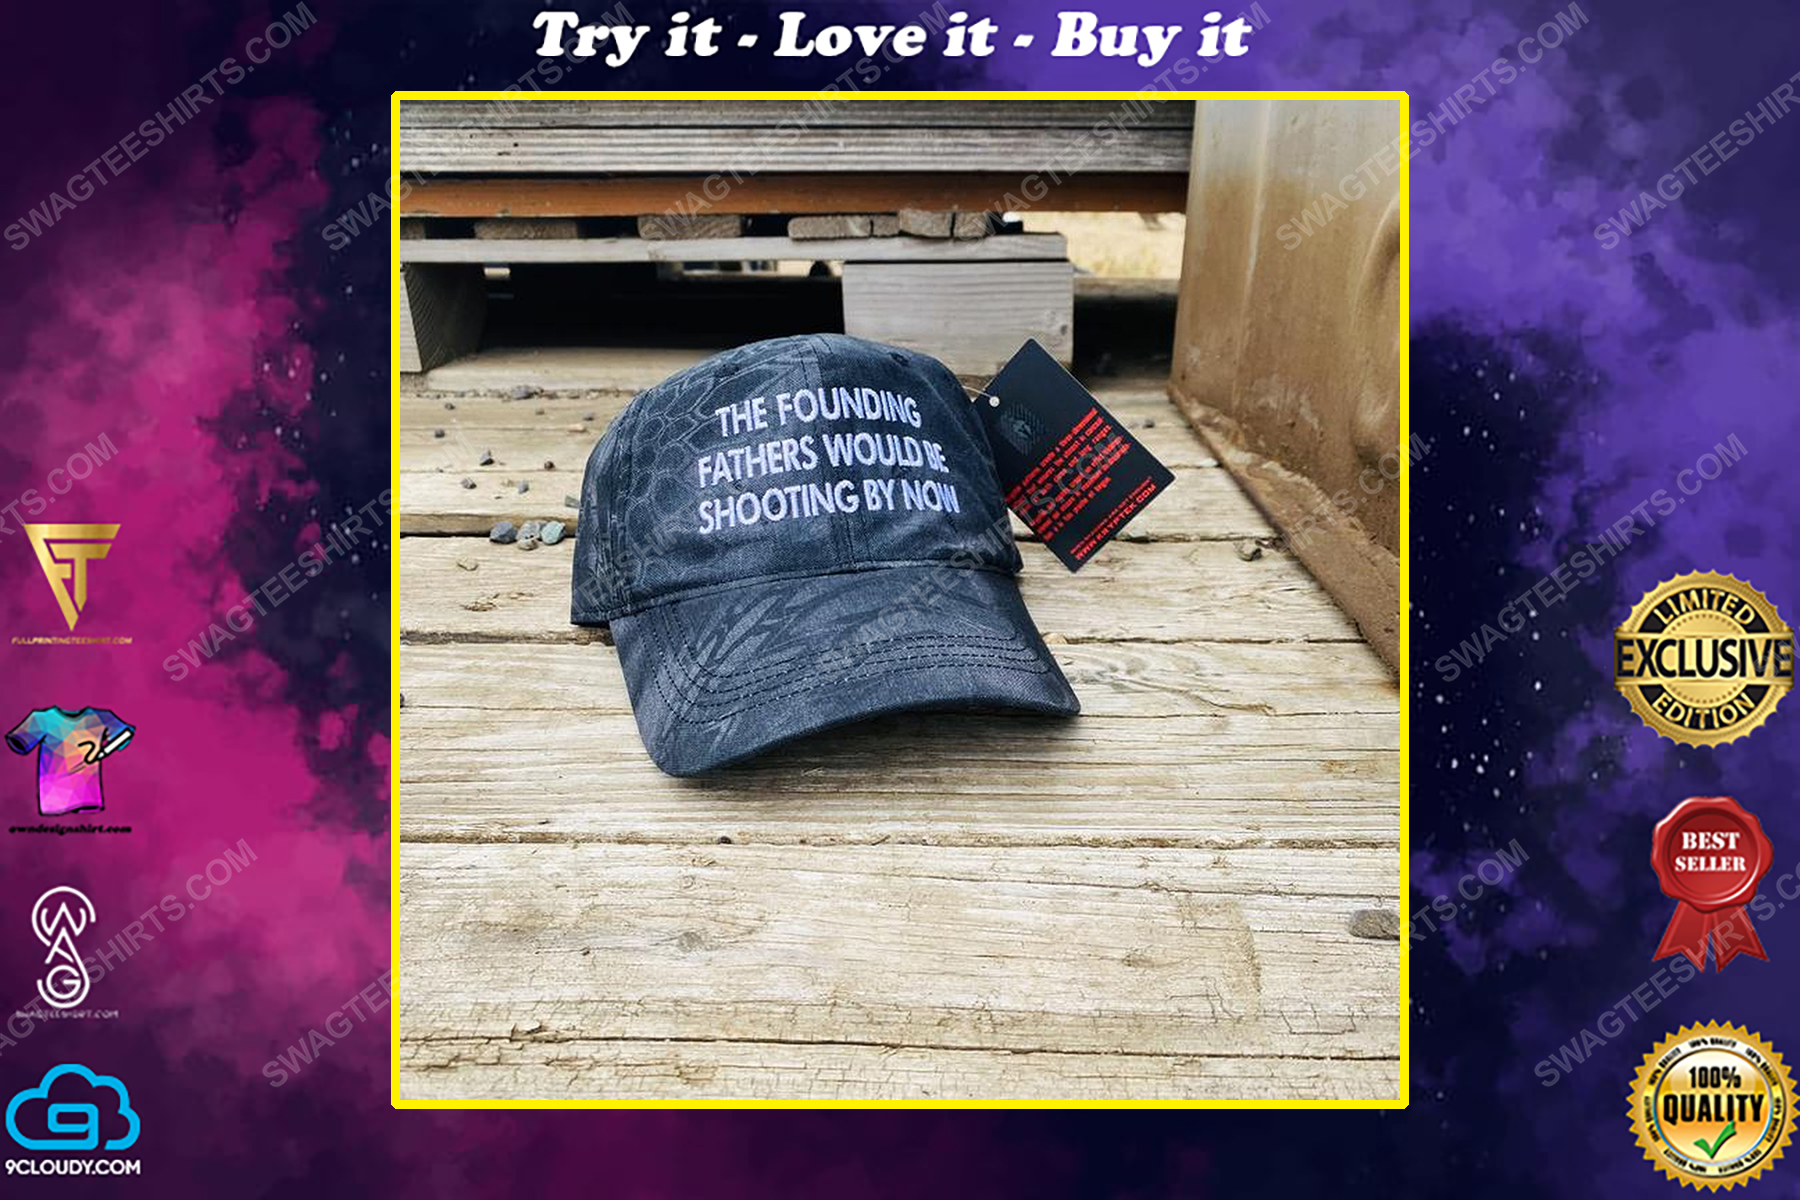 The founding fathers would be shooting by now full print classic hat